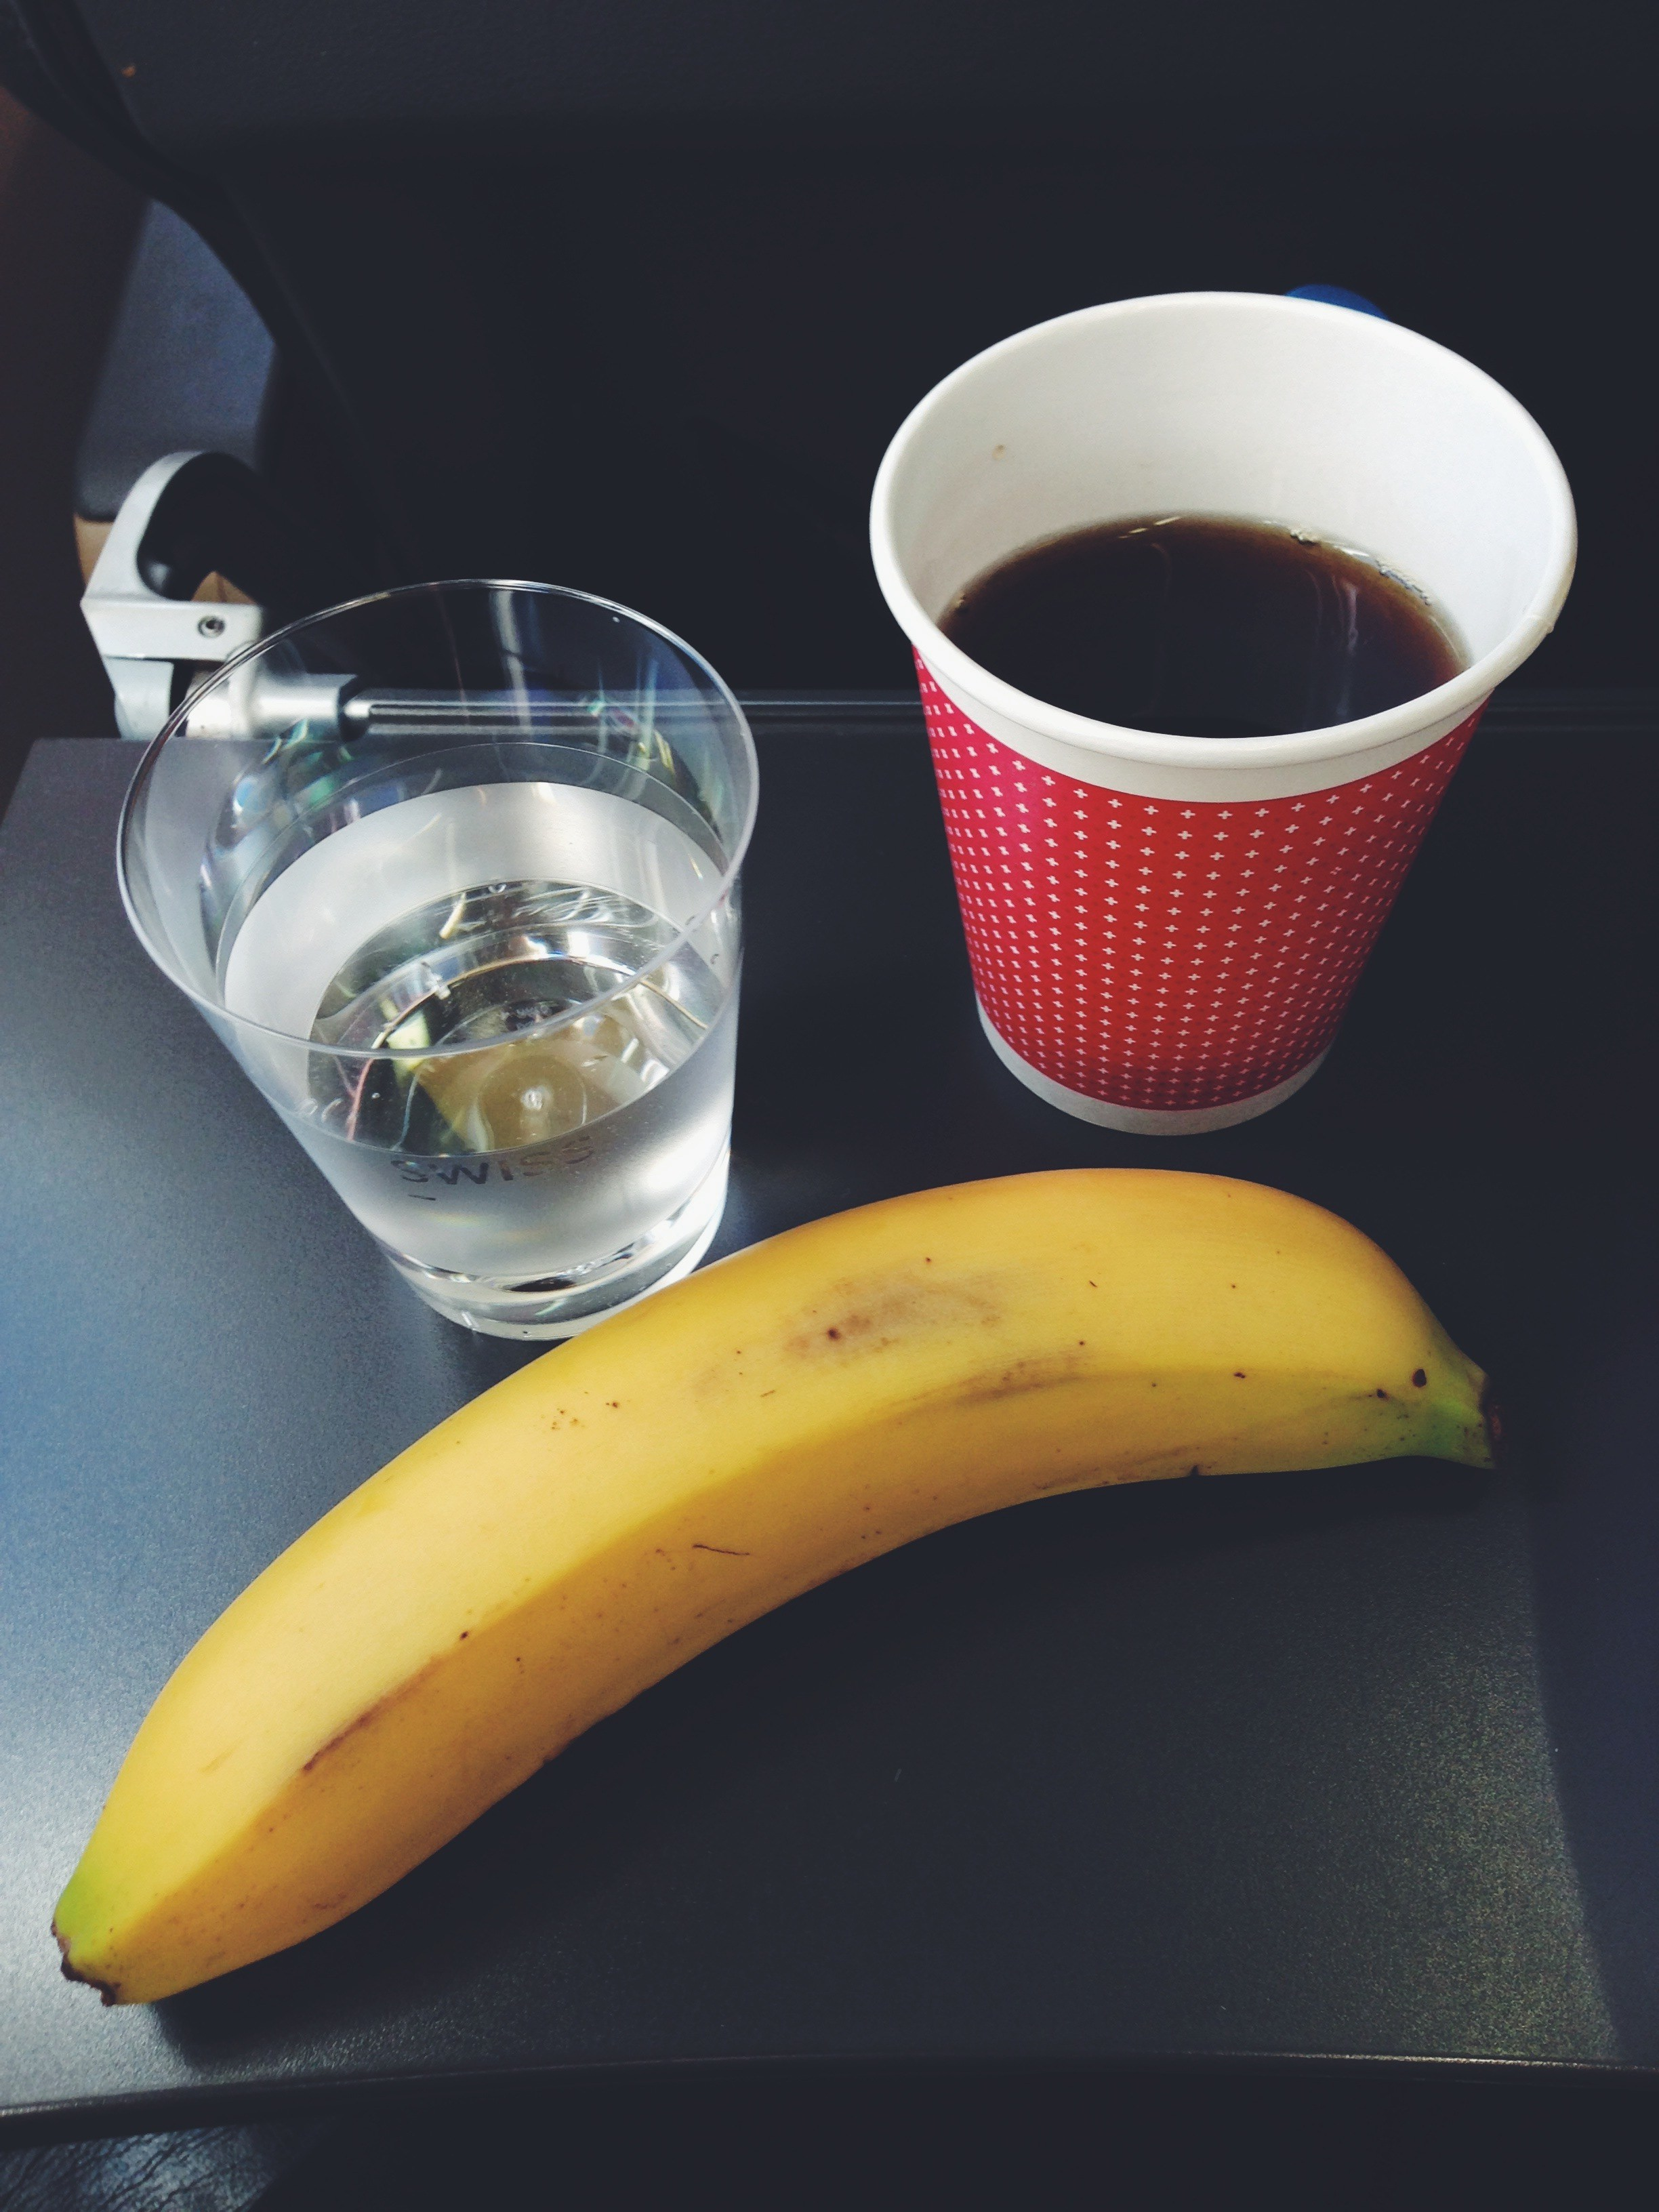 Traveling with Fructose Malabsorption: On the plane // Reisen mit Fructoseintoleranz: Flugzeugessen // Fructopia.de